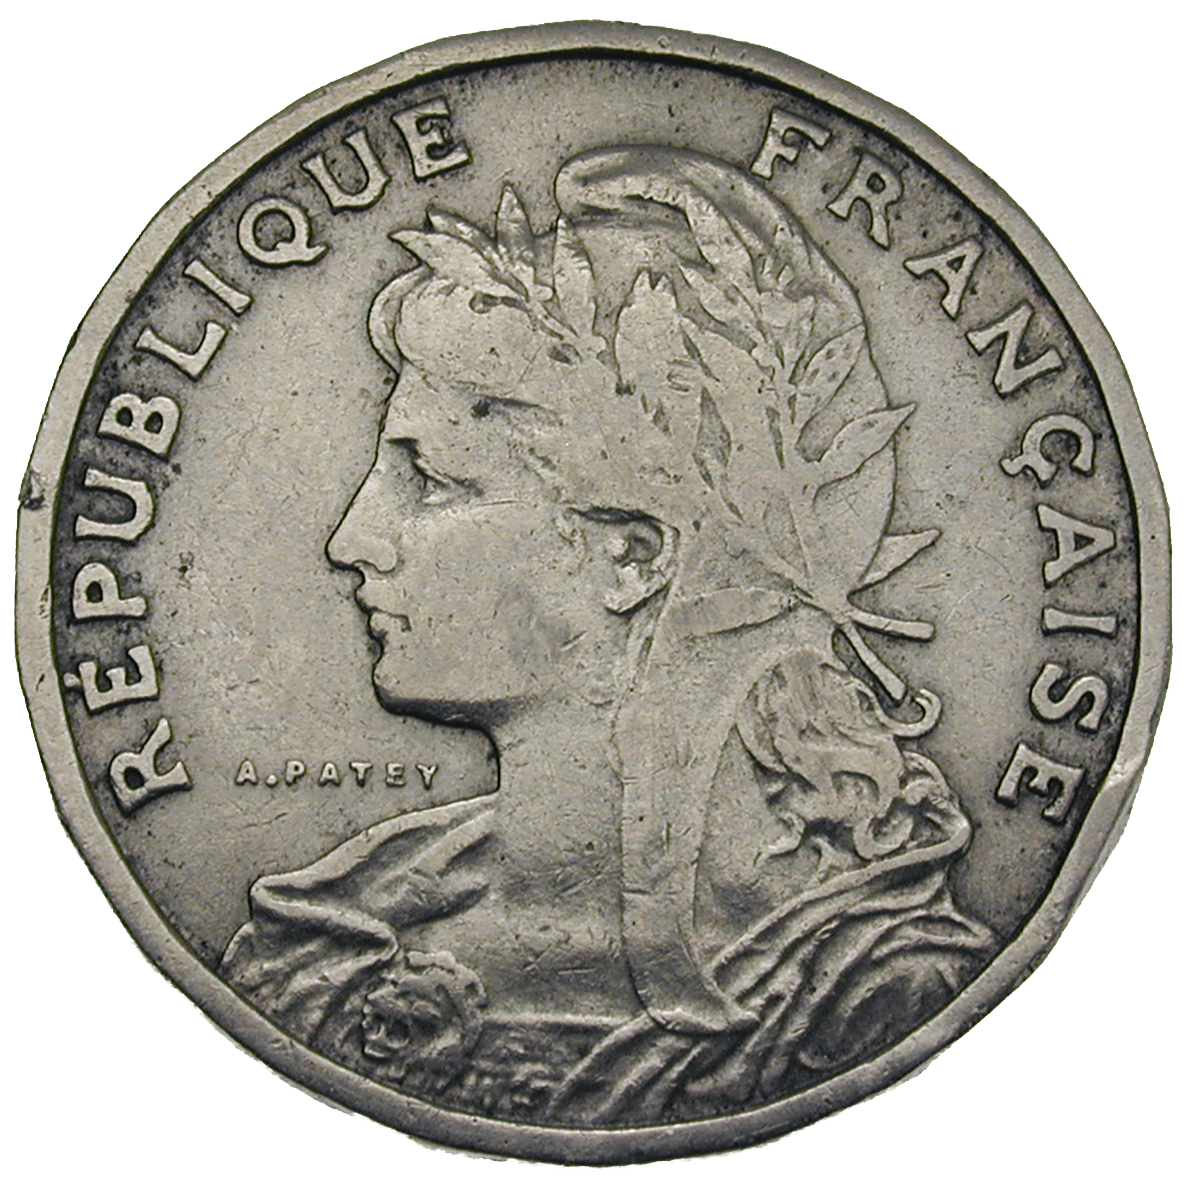 Republic of France, 25 Centimes 1904 (obverse)